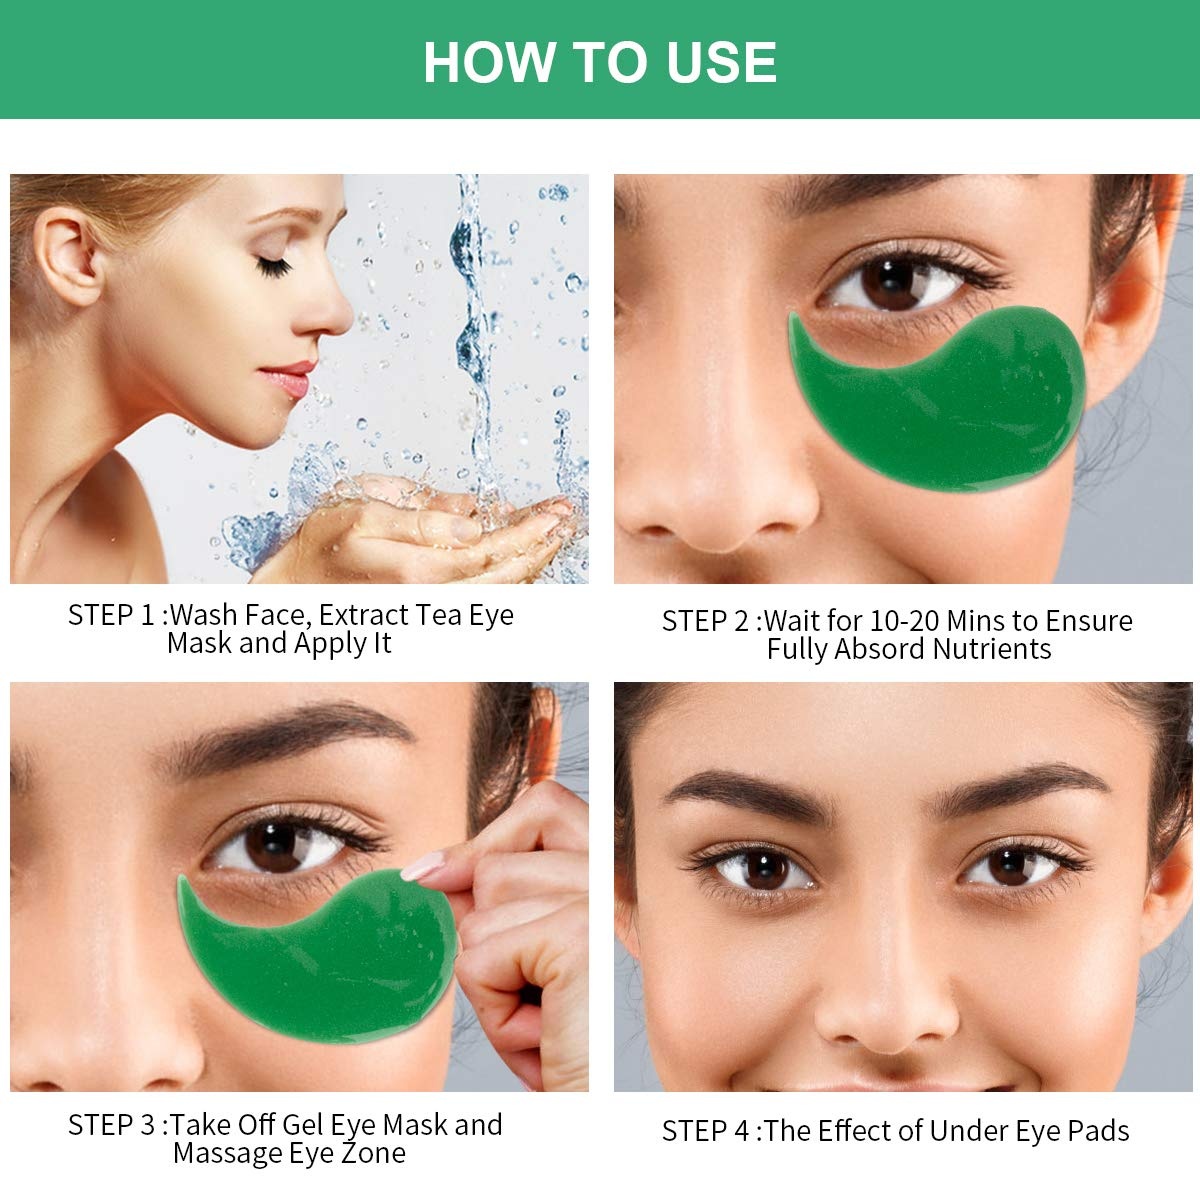 Under Eye Patches, Collagen Under Eye Pads 30 Pairs Anti Aging Tea Gel Eye Treatment Mask for Women Men Energizing Moisturising Hydrating Eye Bags Dark Circles Wrinkles Under Eye Mask